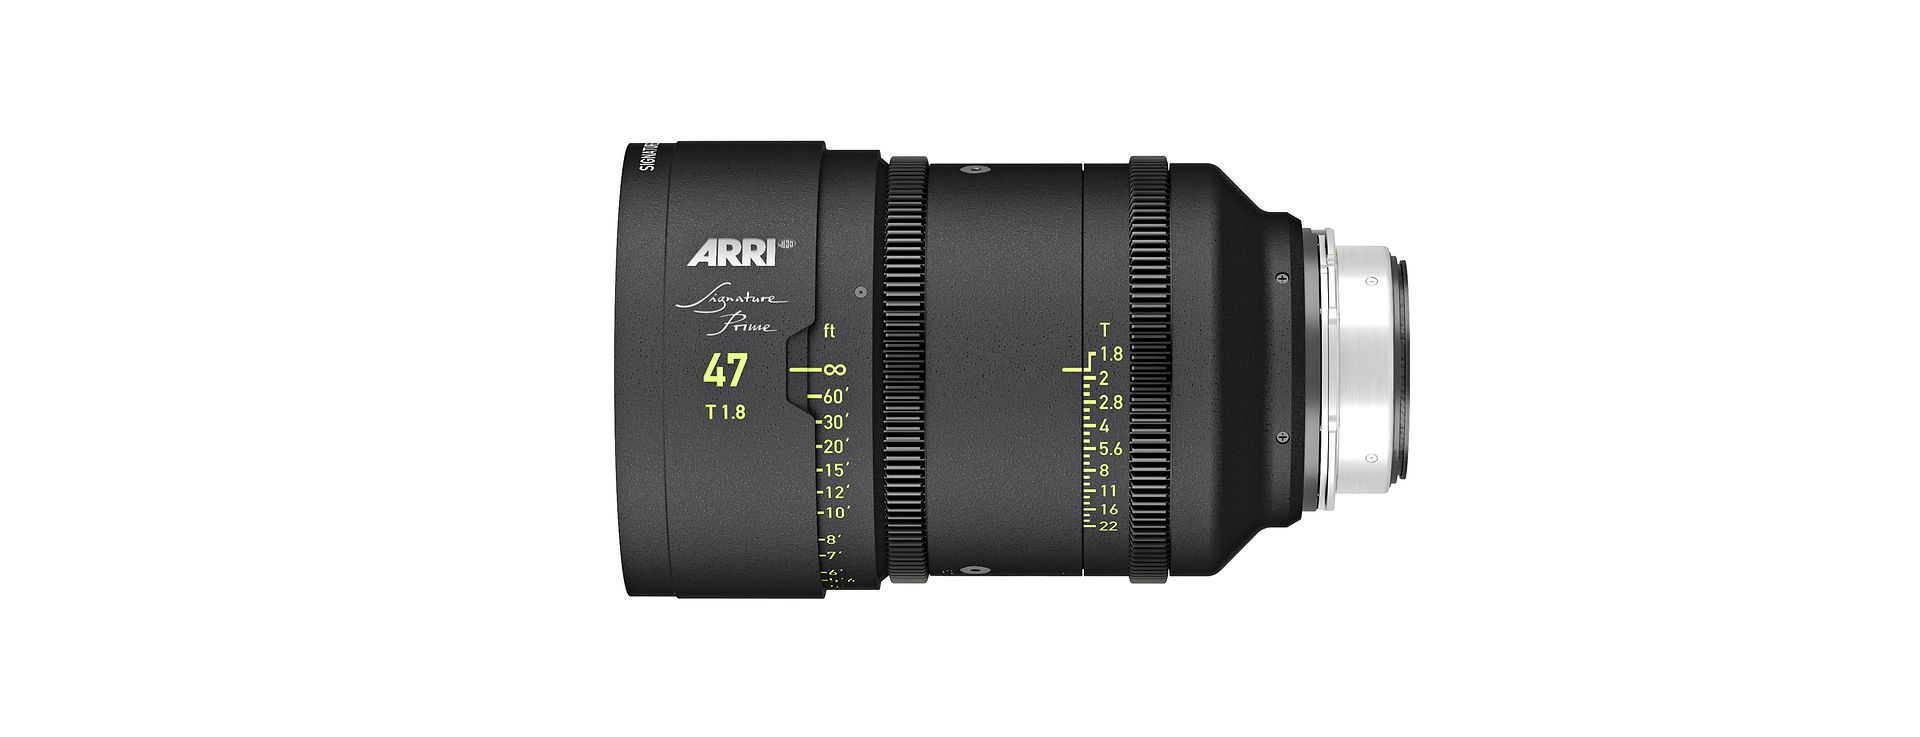 lenses-signature-prime-overview-image-sp-47.jpg